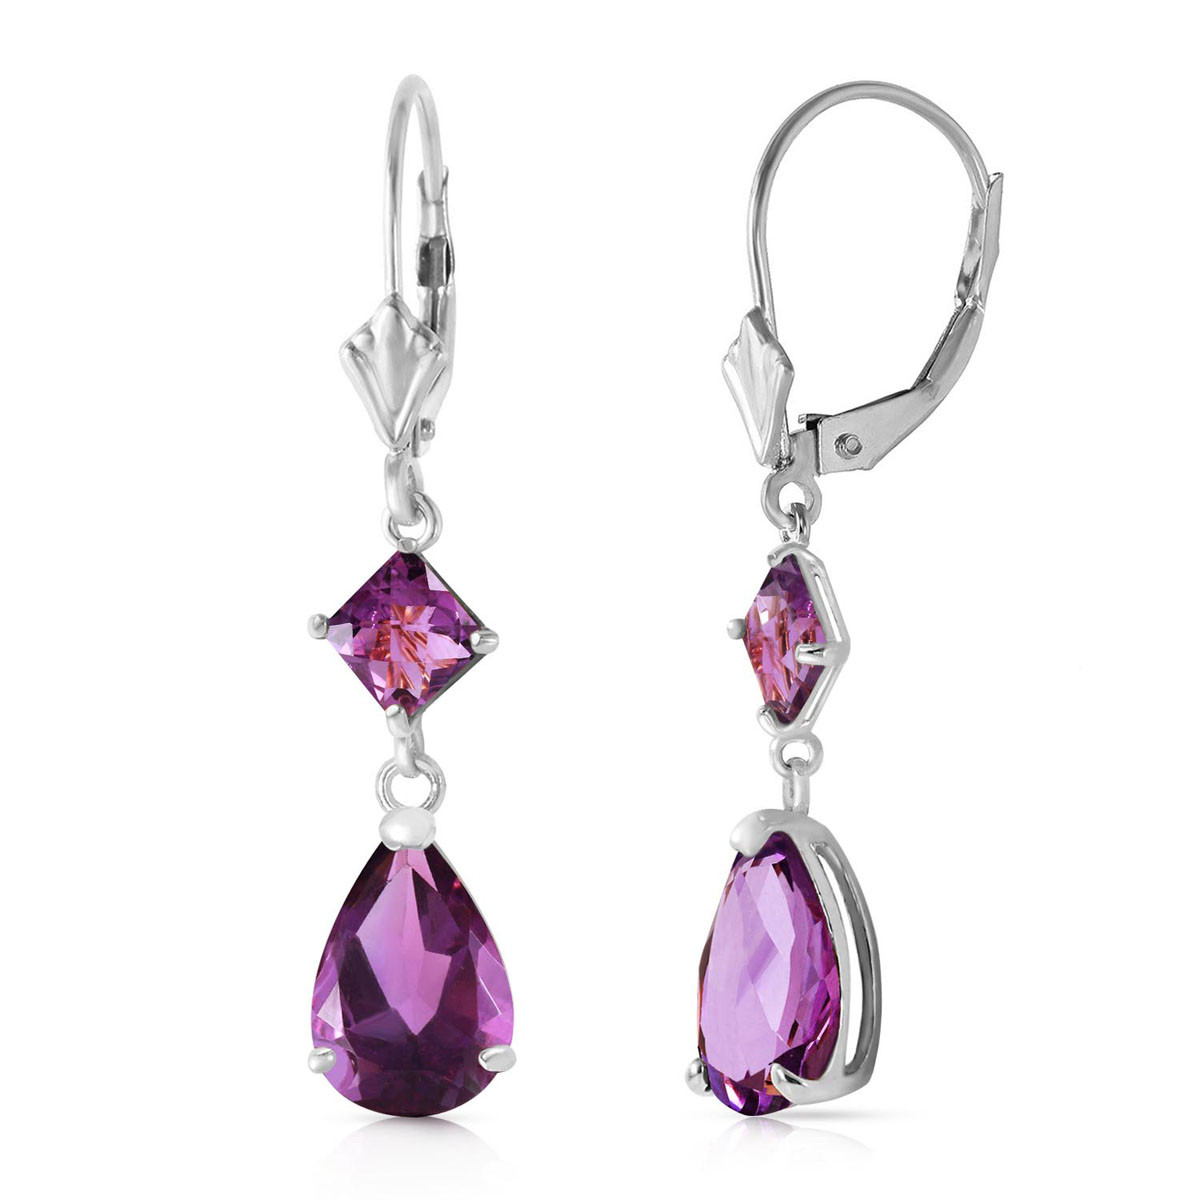 Amethyst Droplet Earrings 4.5 ctw in 9ct White Gold